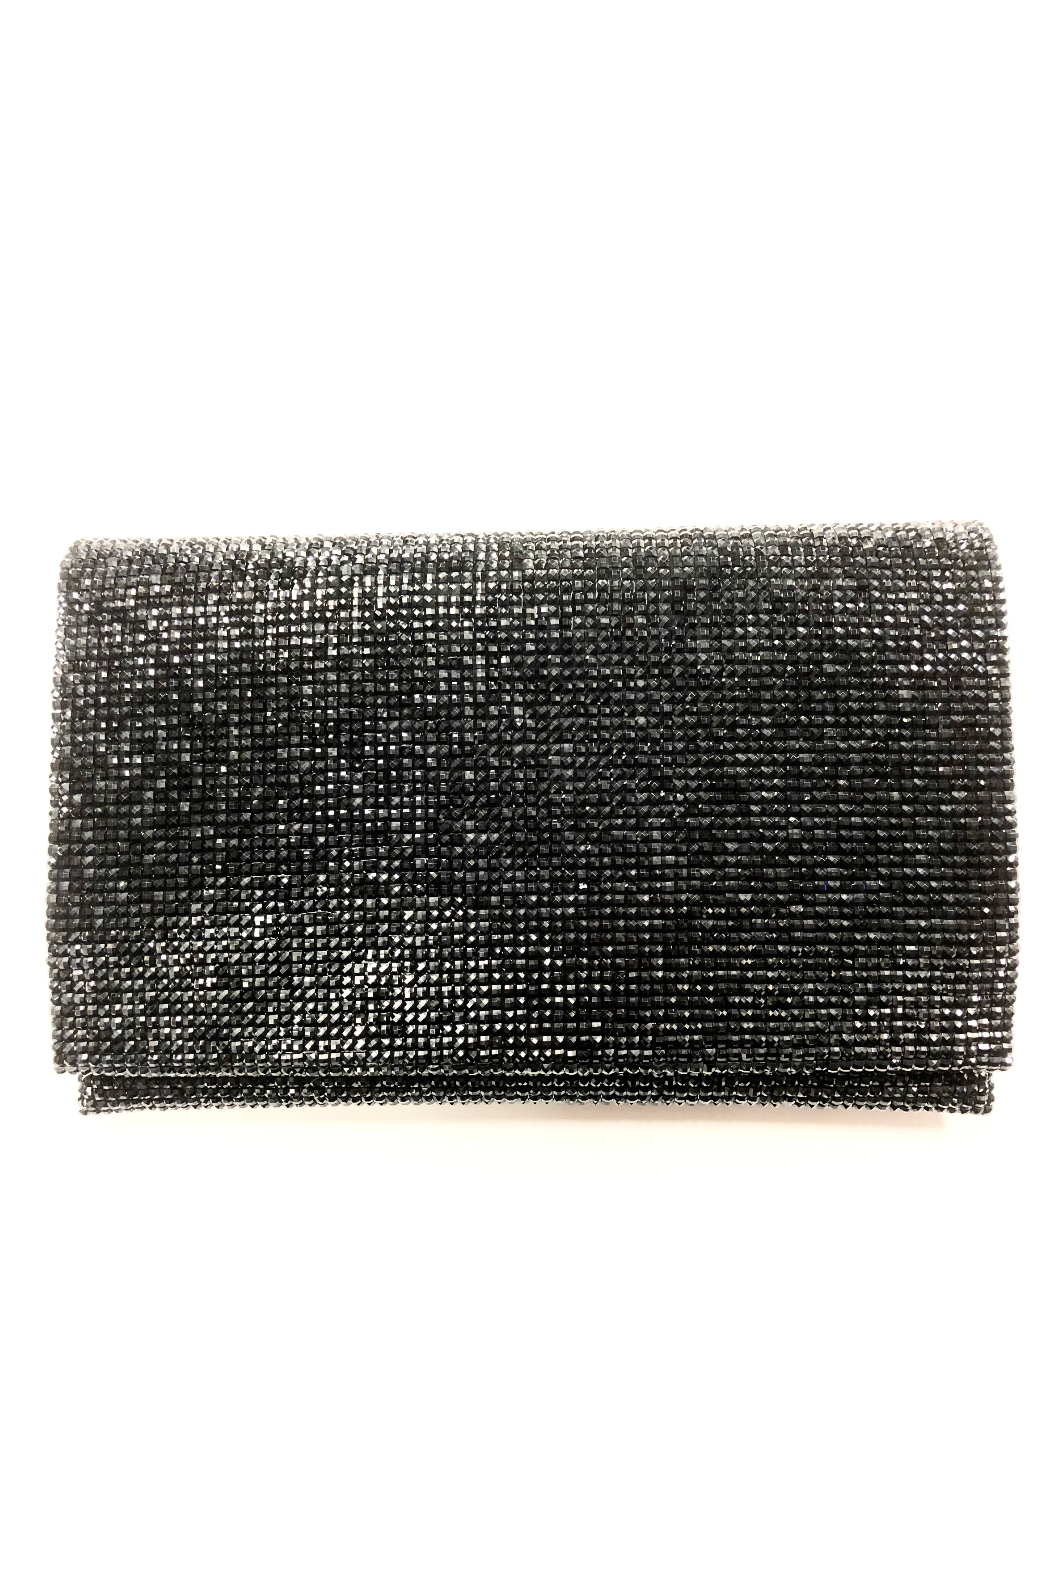 Sondra Roberts Facetted Crystals Clutch - Front Cropped Image